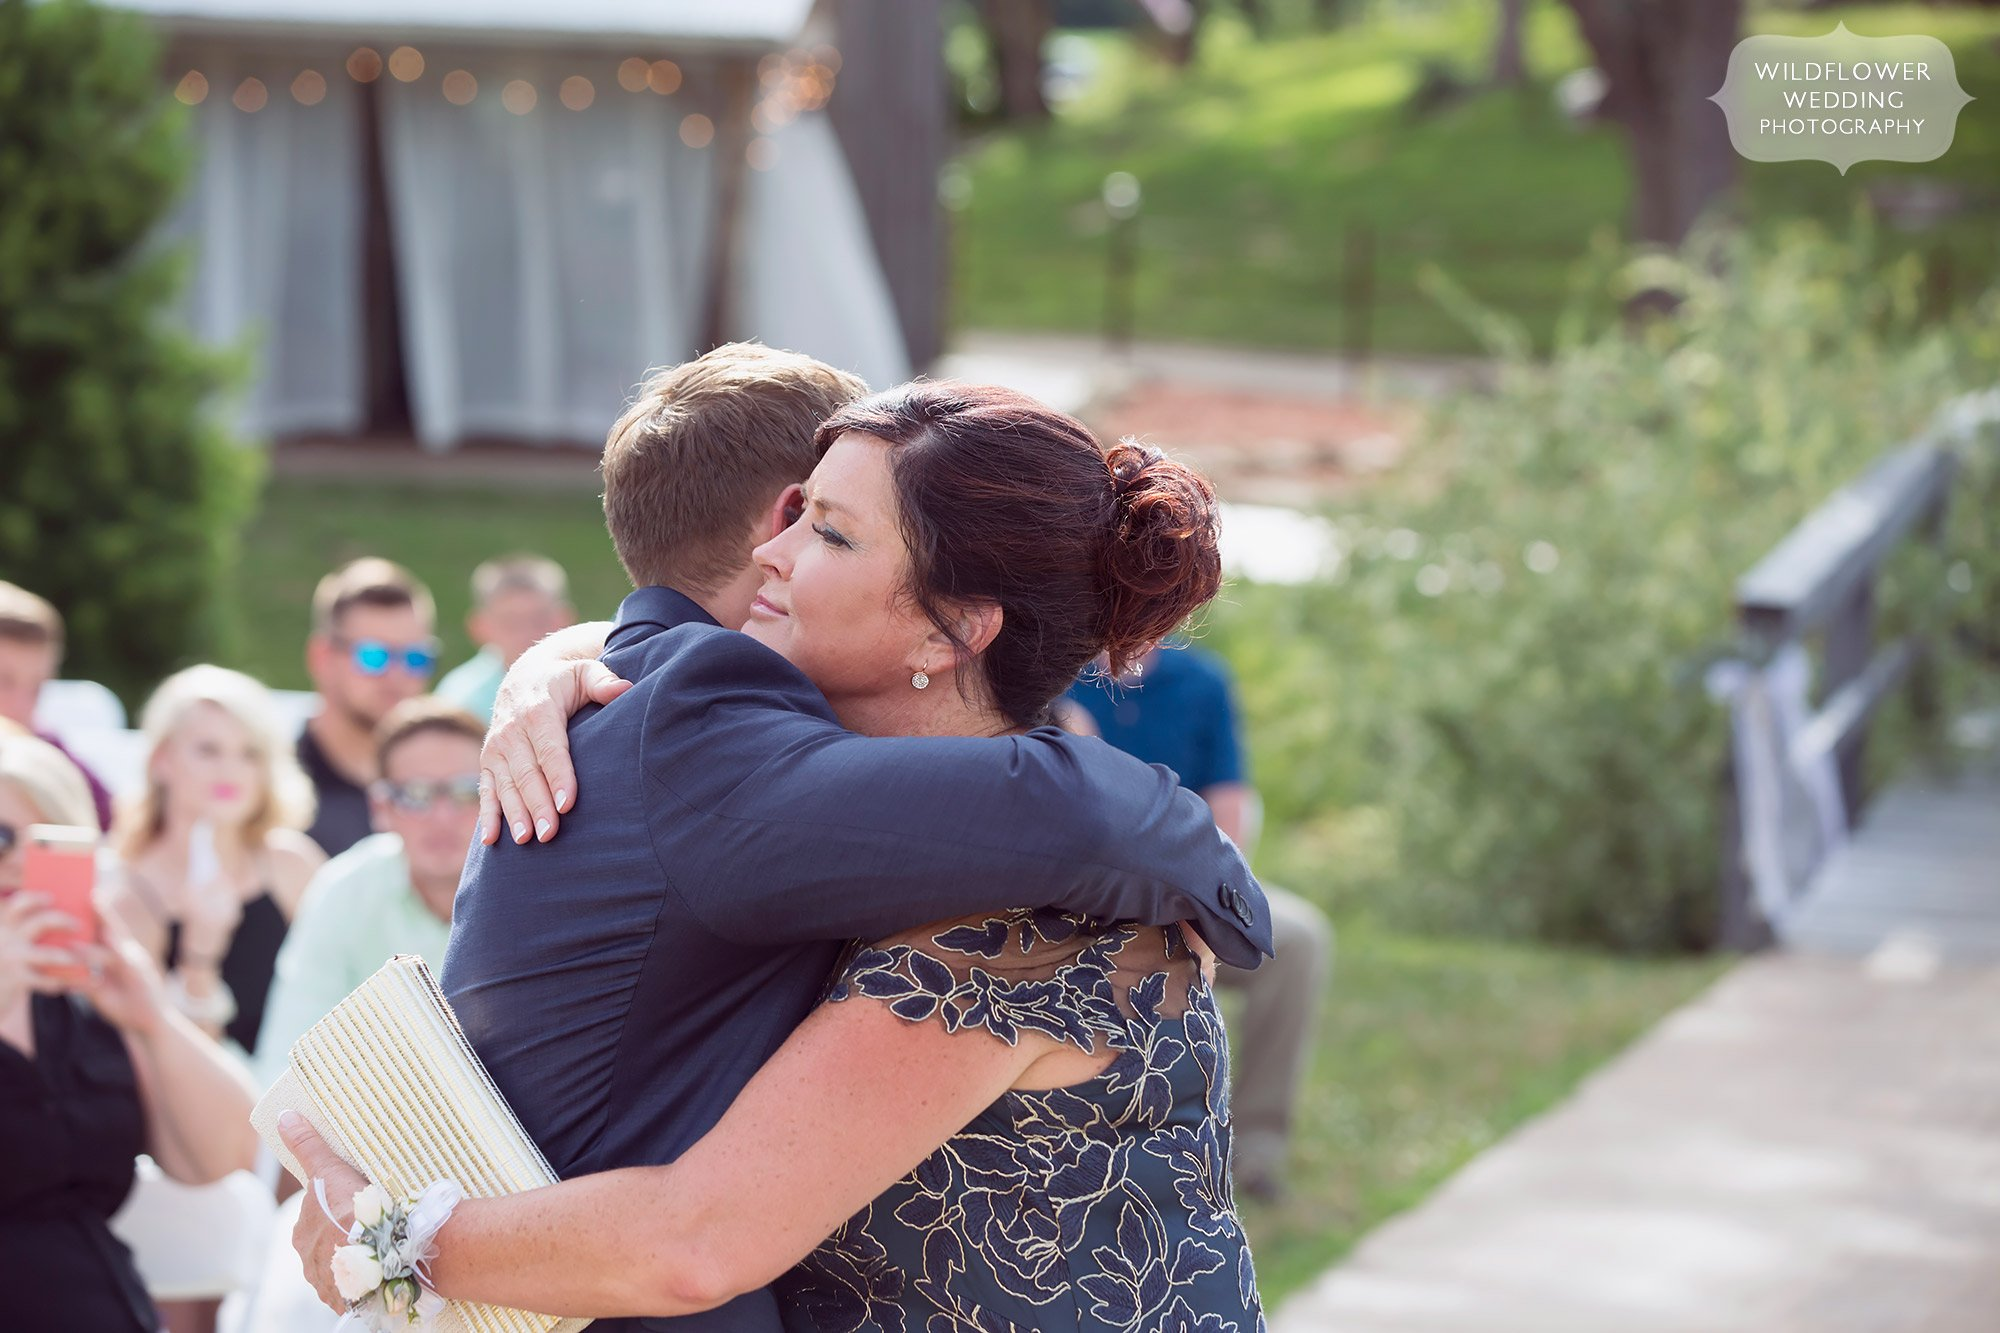 Candid photo of the groom hugging his mother in law before the outdoor ceremony at this barn wedding in southern MO.